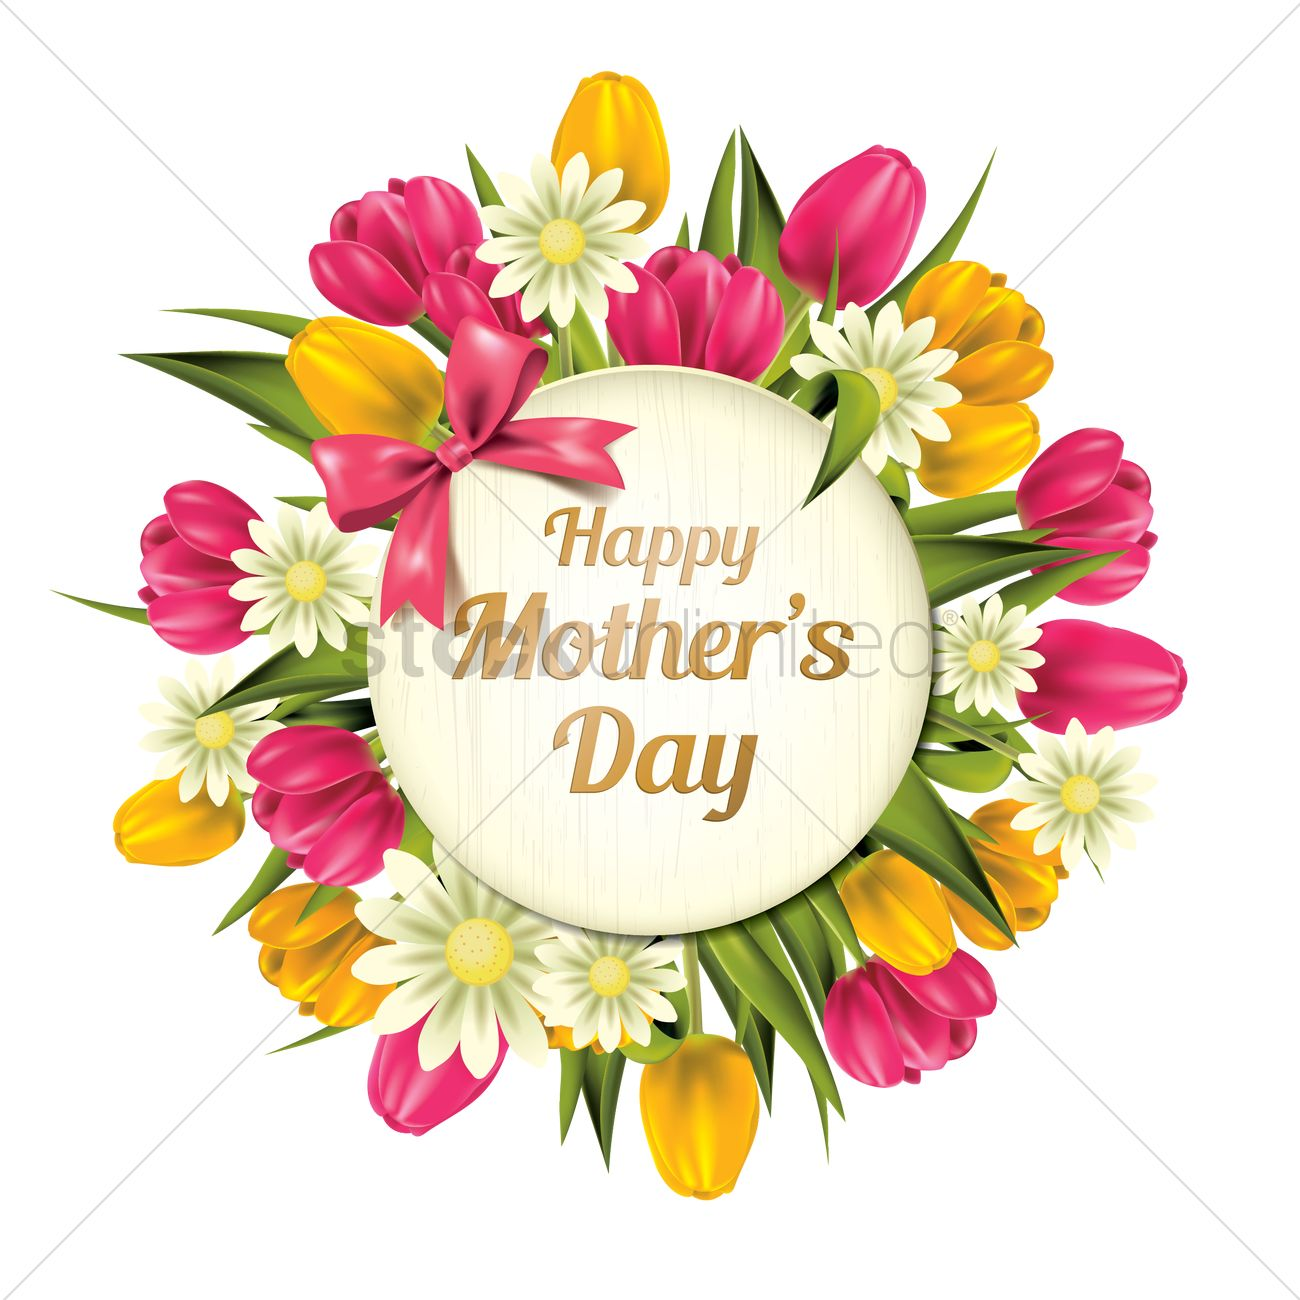 Happy Mothers Day Vector Image 1807710 Stockunlimited